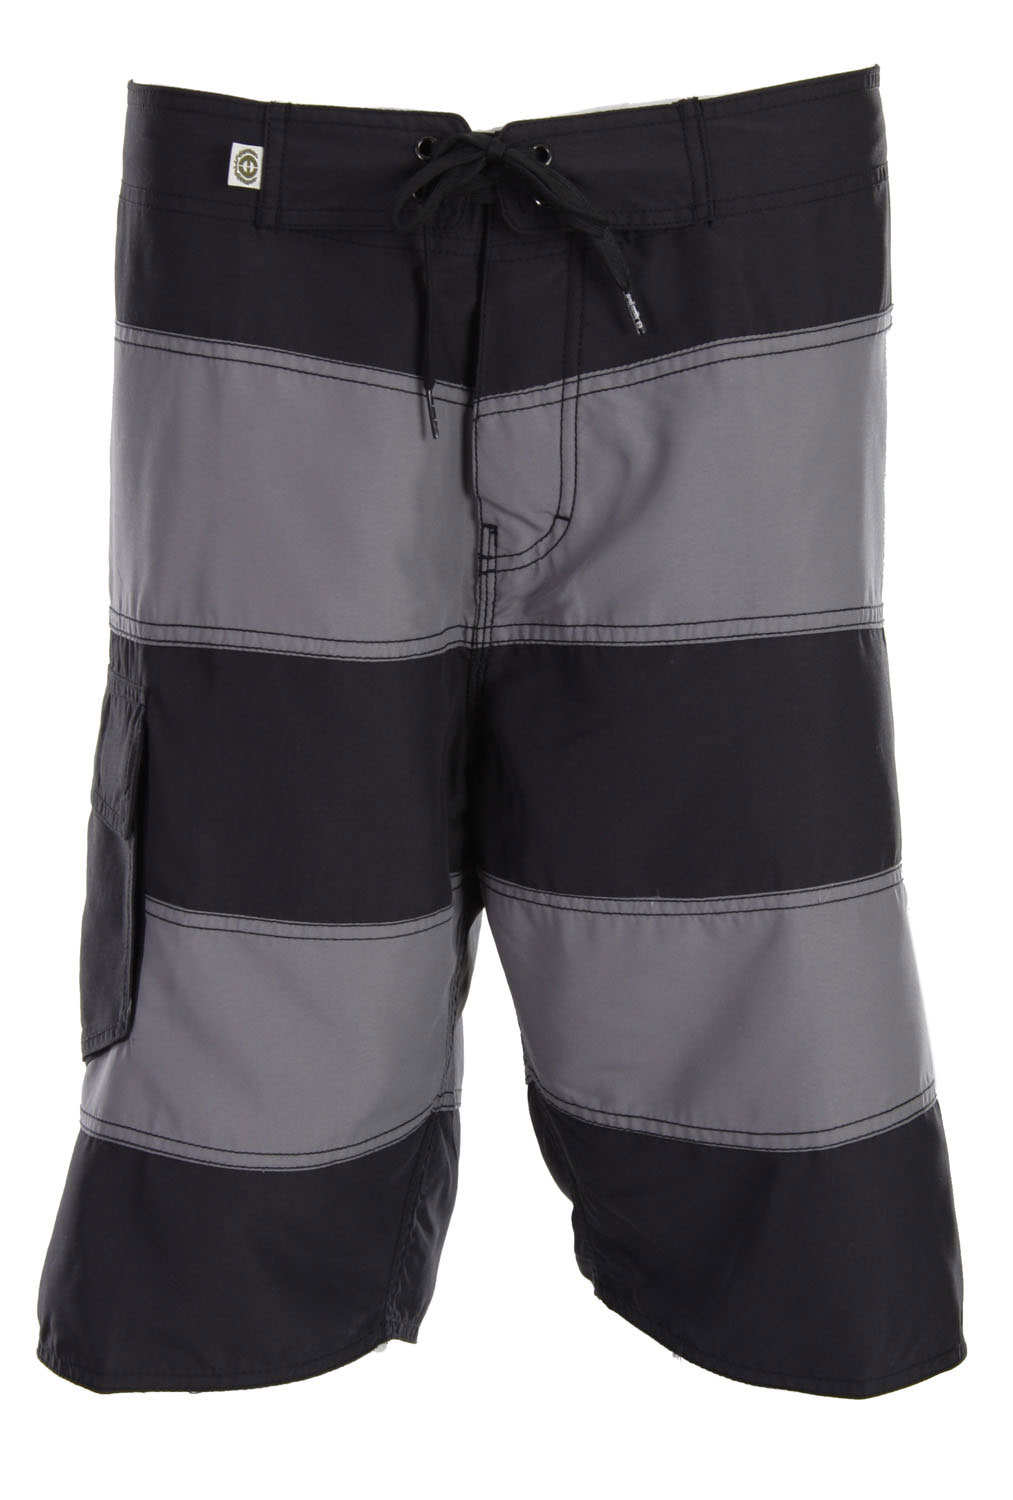 "Surf These shorts are lightweight and easy to wear throughout the summer. The fast-drying material is great for times when you're always in and out of the water. The right leg features a spacious pocket, perfect for keeping all the essential things you need to keep on you. And don't think for one moment that these shorts are made from some type of junky material. They are 100 percent recycled polyester, so you can feel good about wearing them while staying comfortable.Key Features of the Planet Earth Freeman Boardshorts: 100% Recycled Polyester PET Single Cargo Pocket Outseam: 22"" - $27.85"